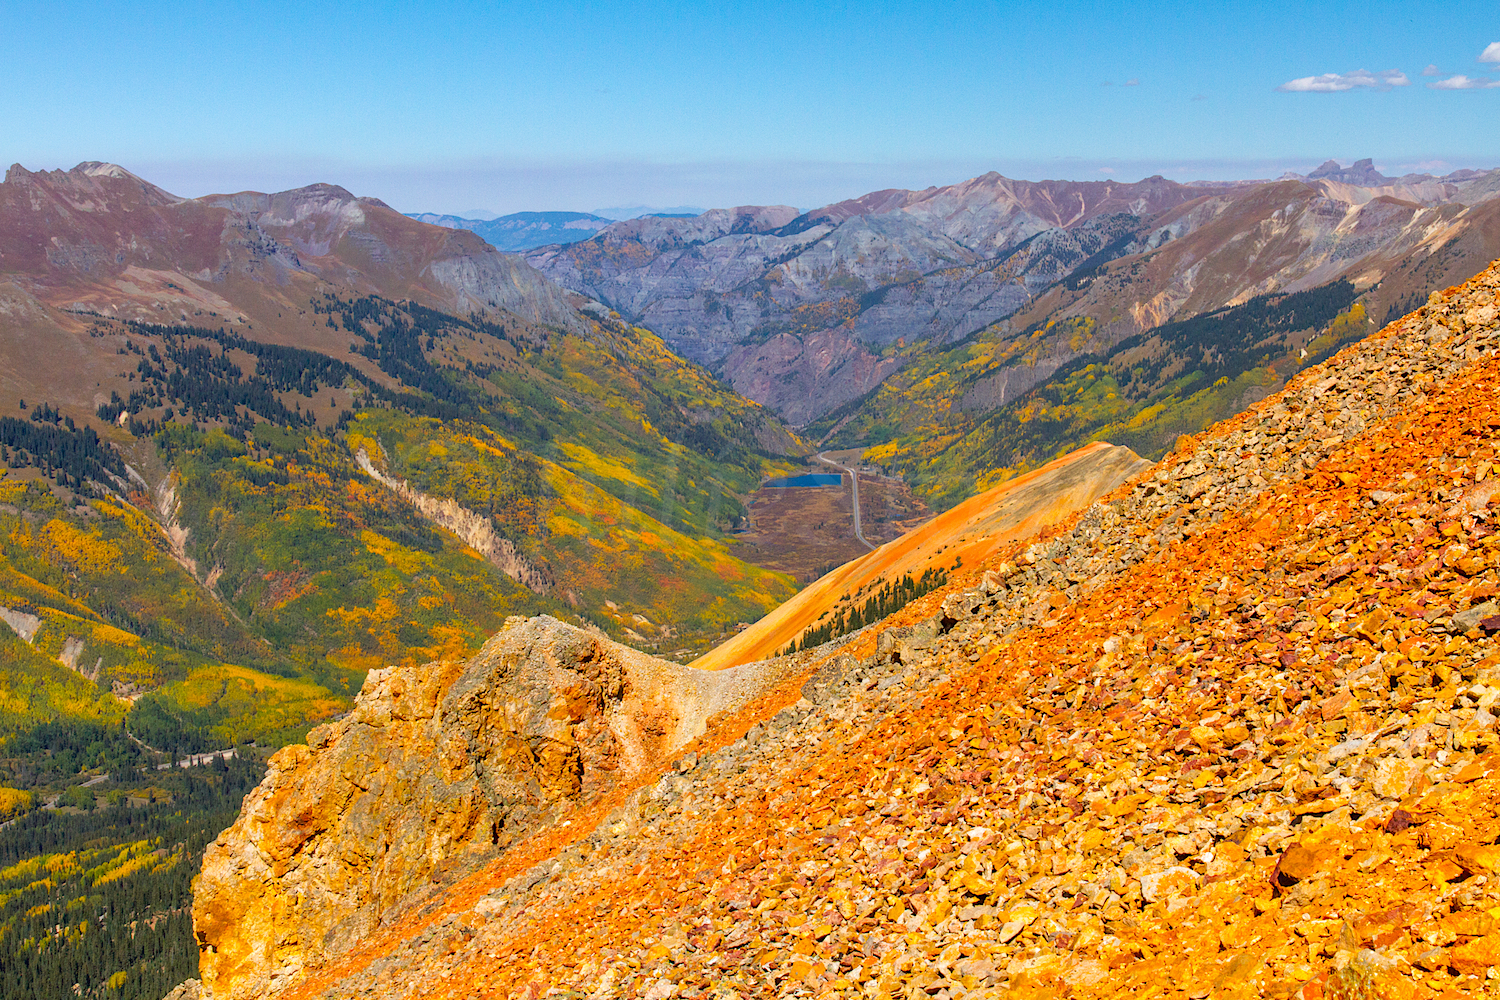 Red Mountain #3, Image # 6162